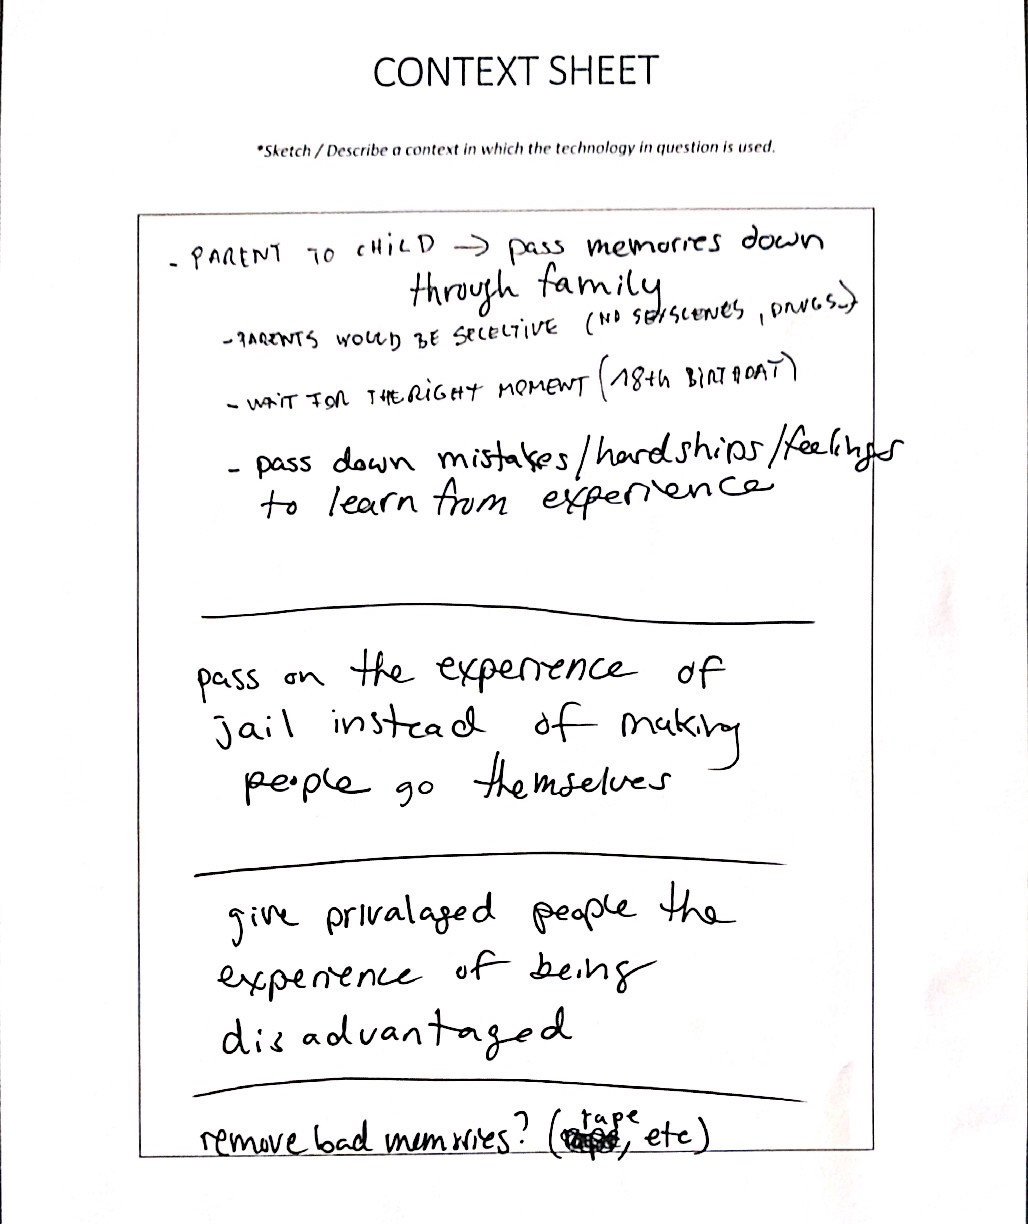 A context sheet featuring some hand-written text.